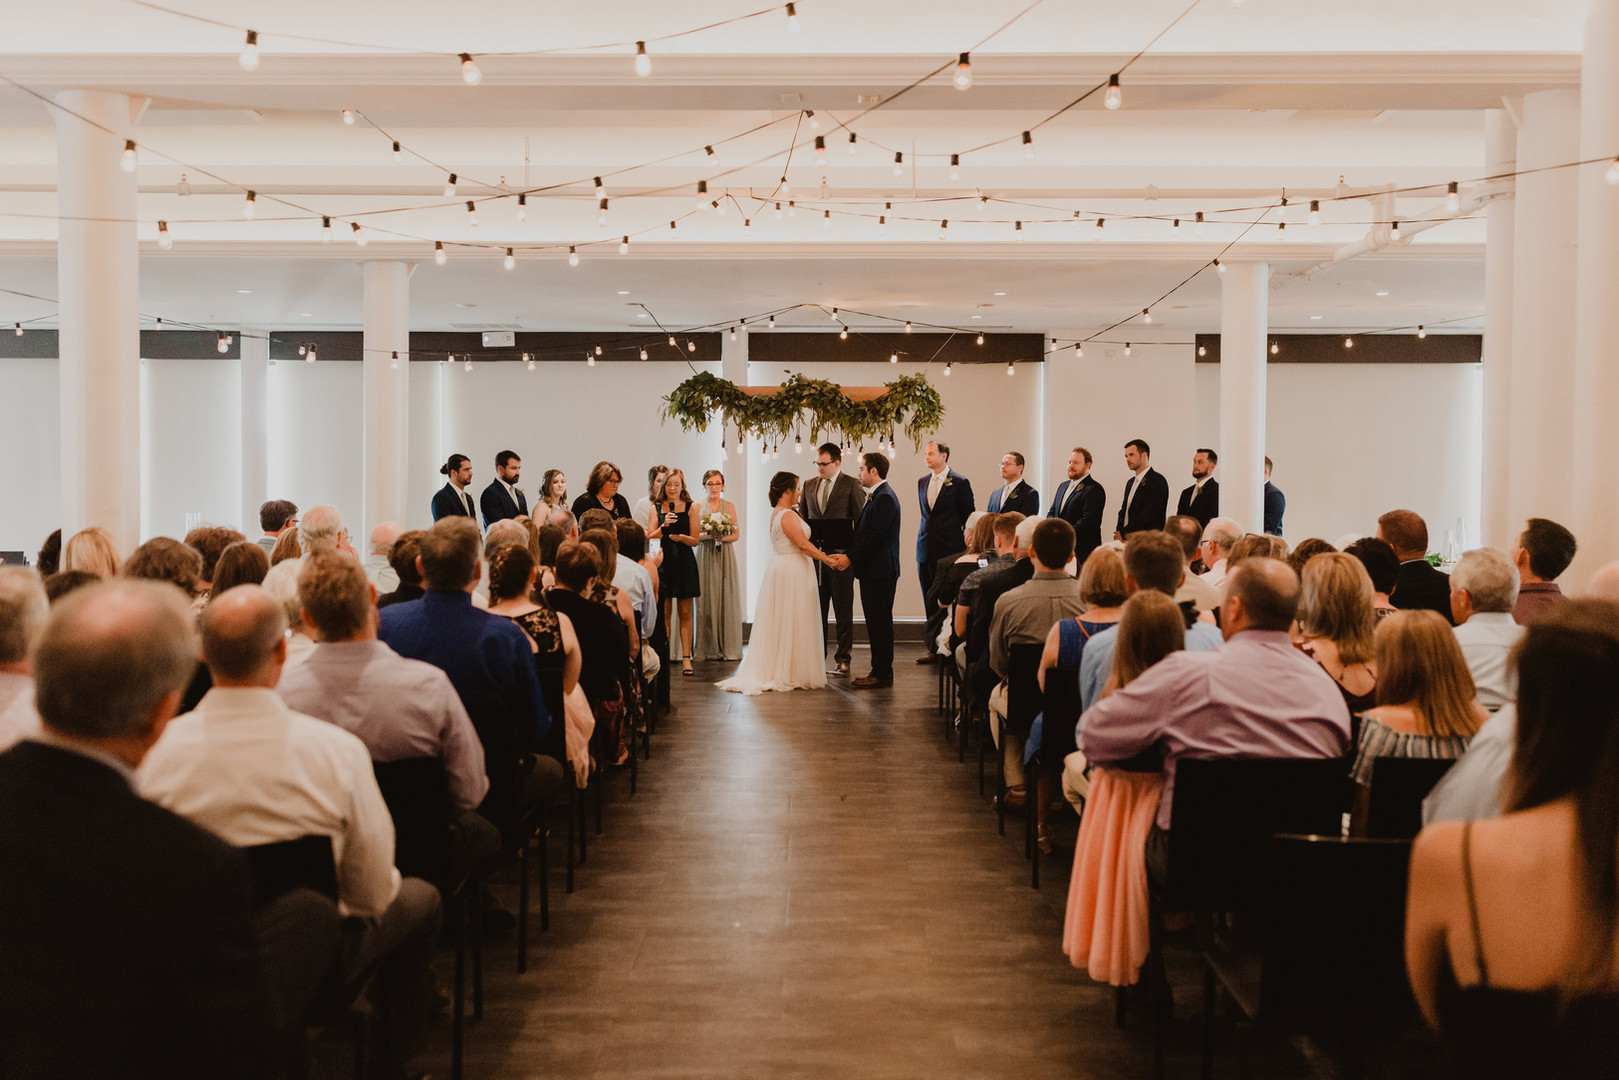 Grace T Photography | Wedding Design